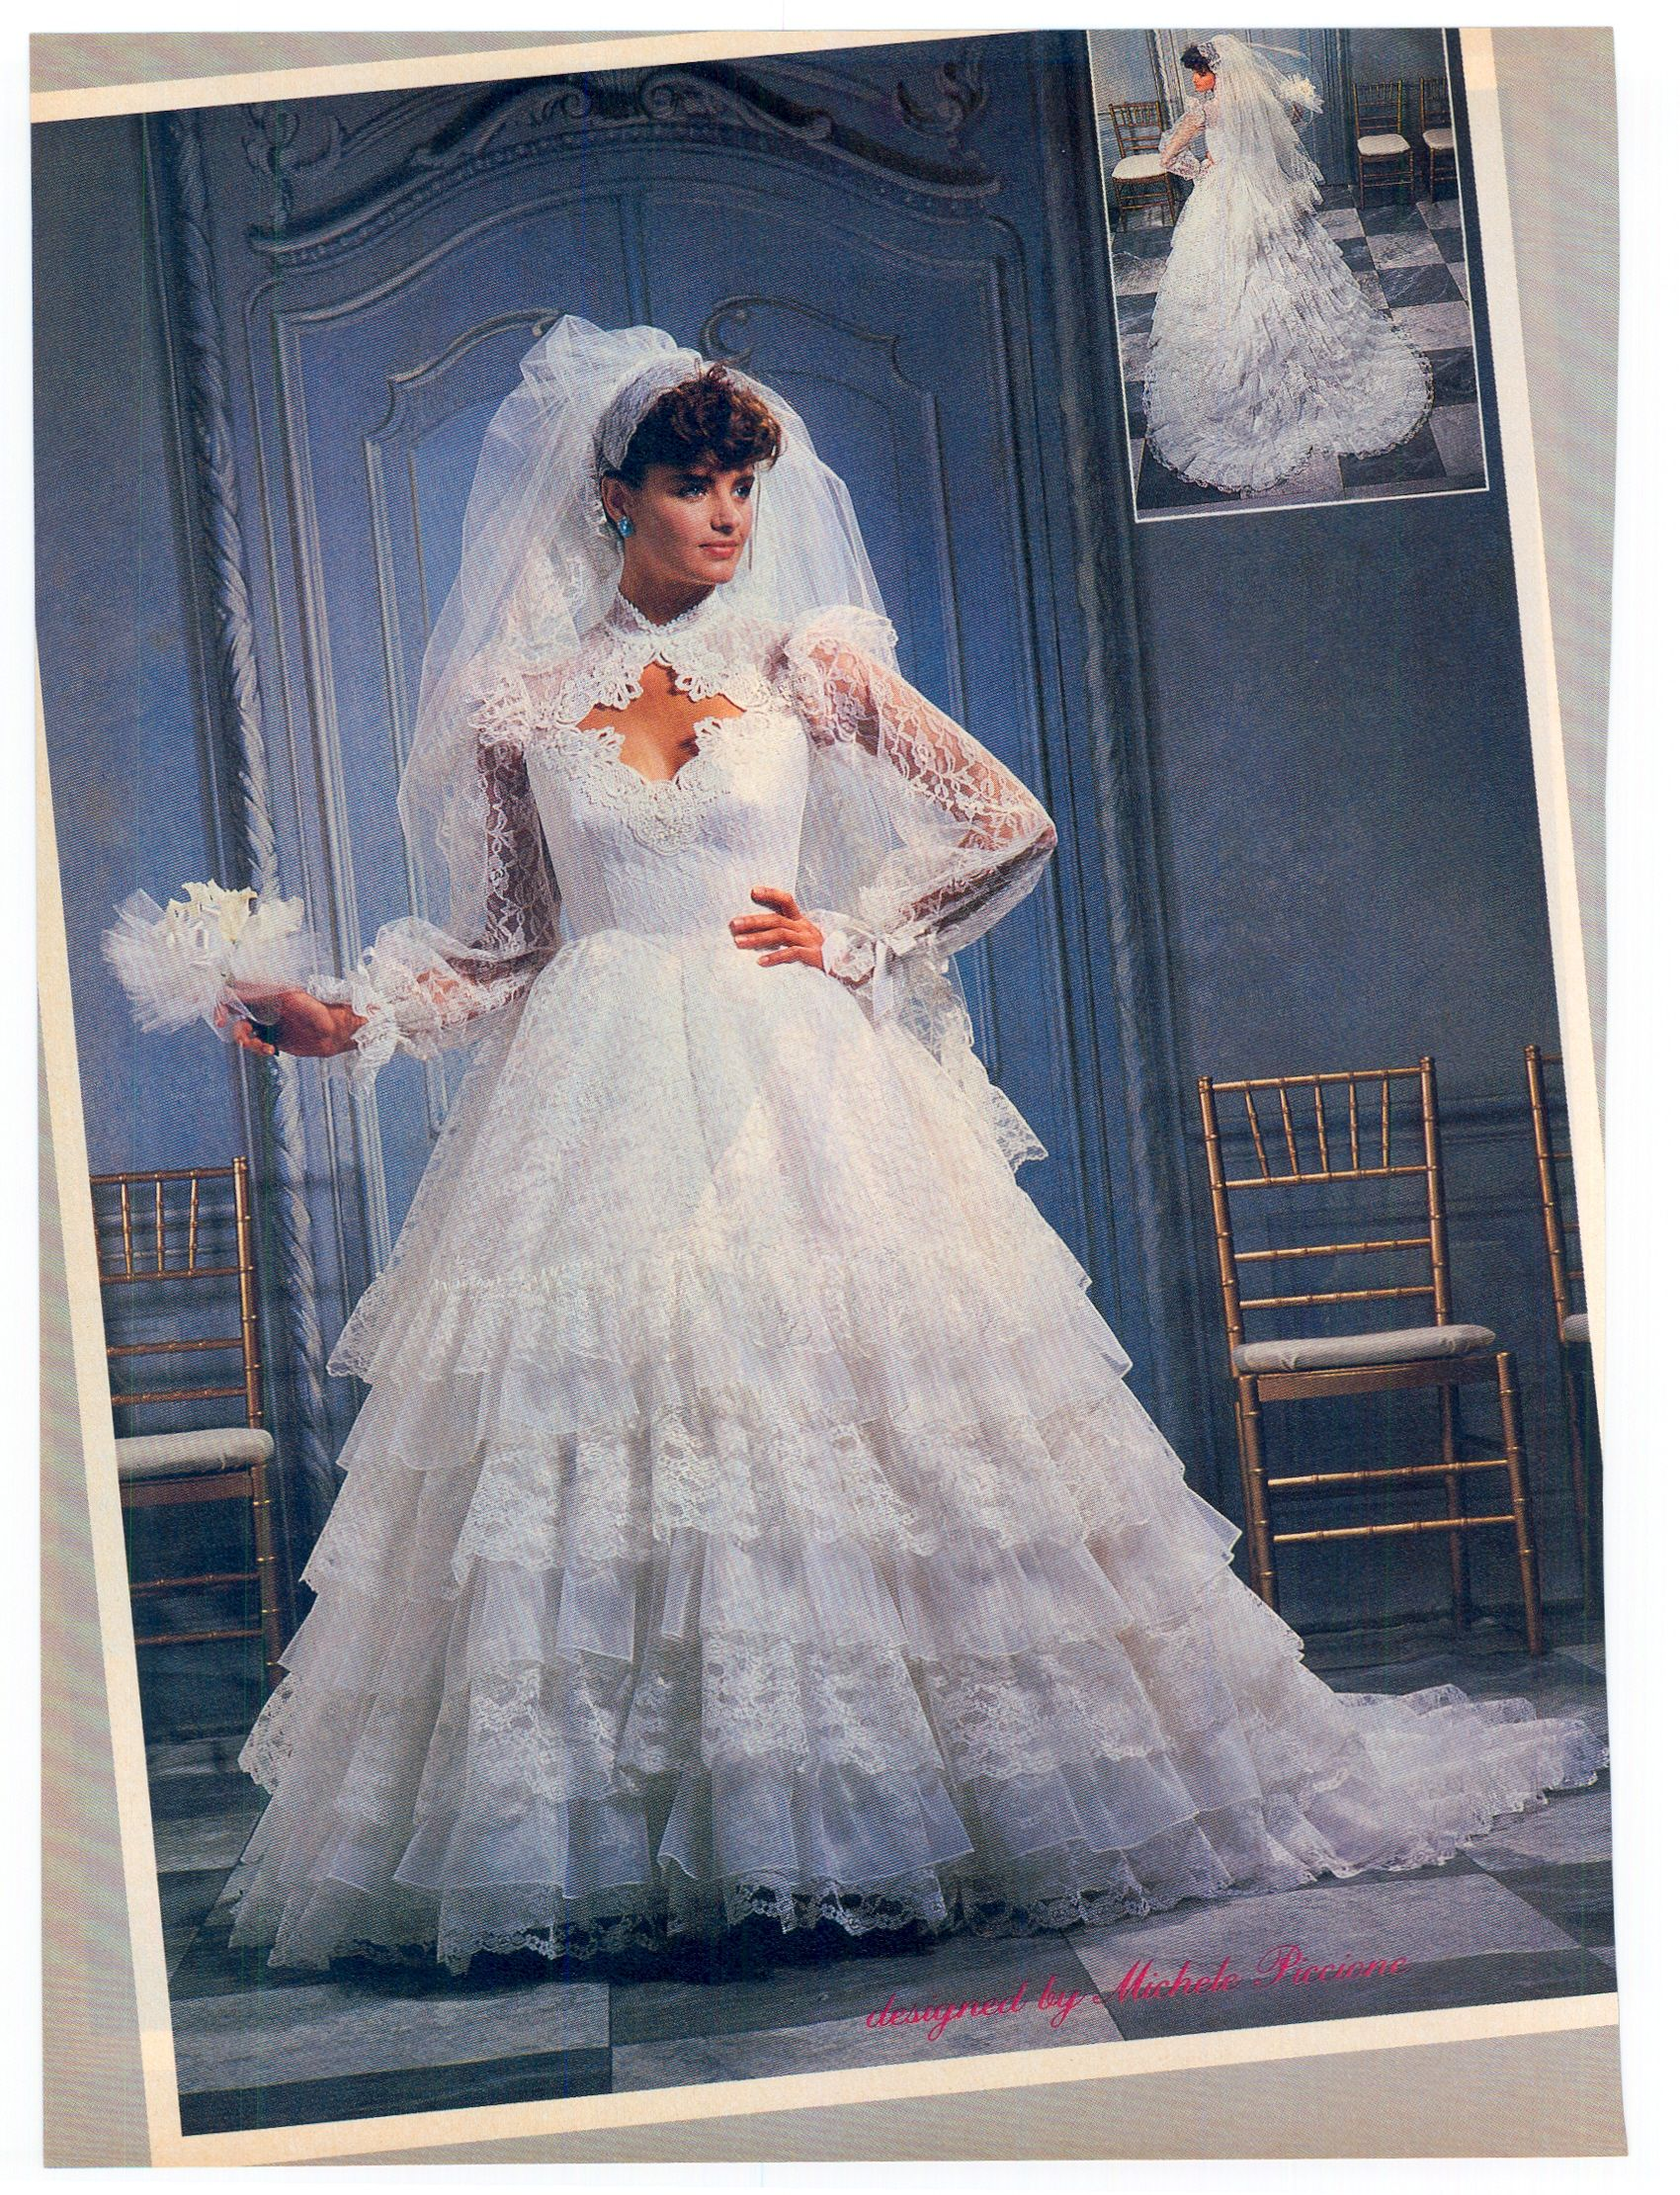 That heart shaped train!!! Love it! 1985 Aug/Sept Brides magazine ...